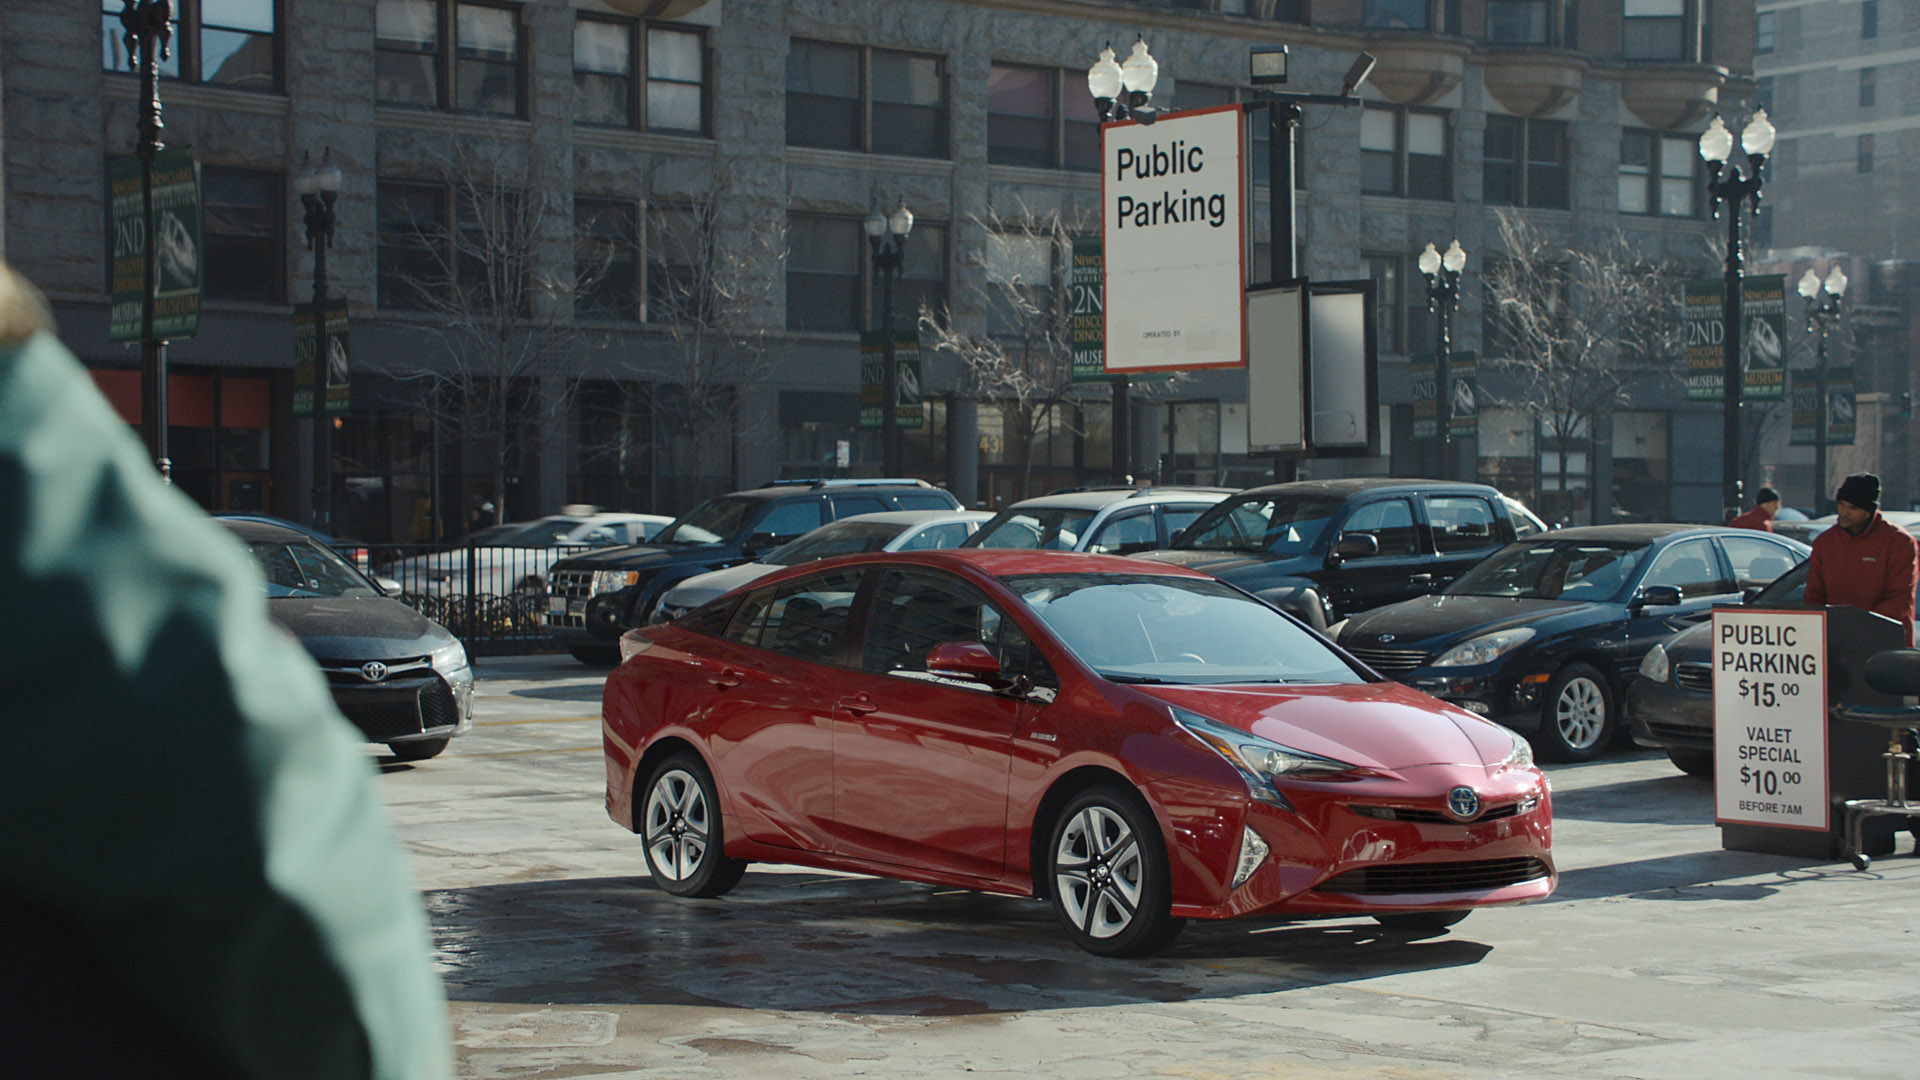 Prius hosts The Wire reunion in Super Bowl commercial